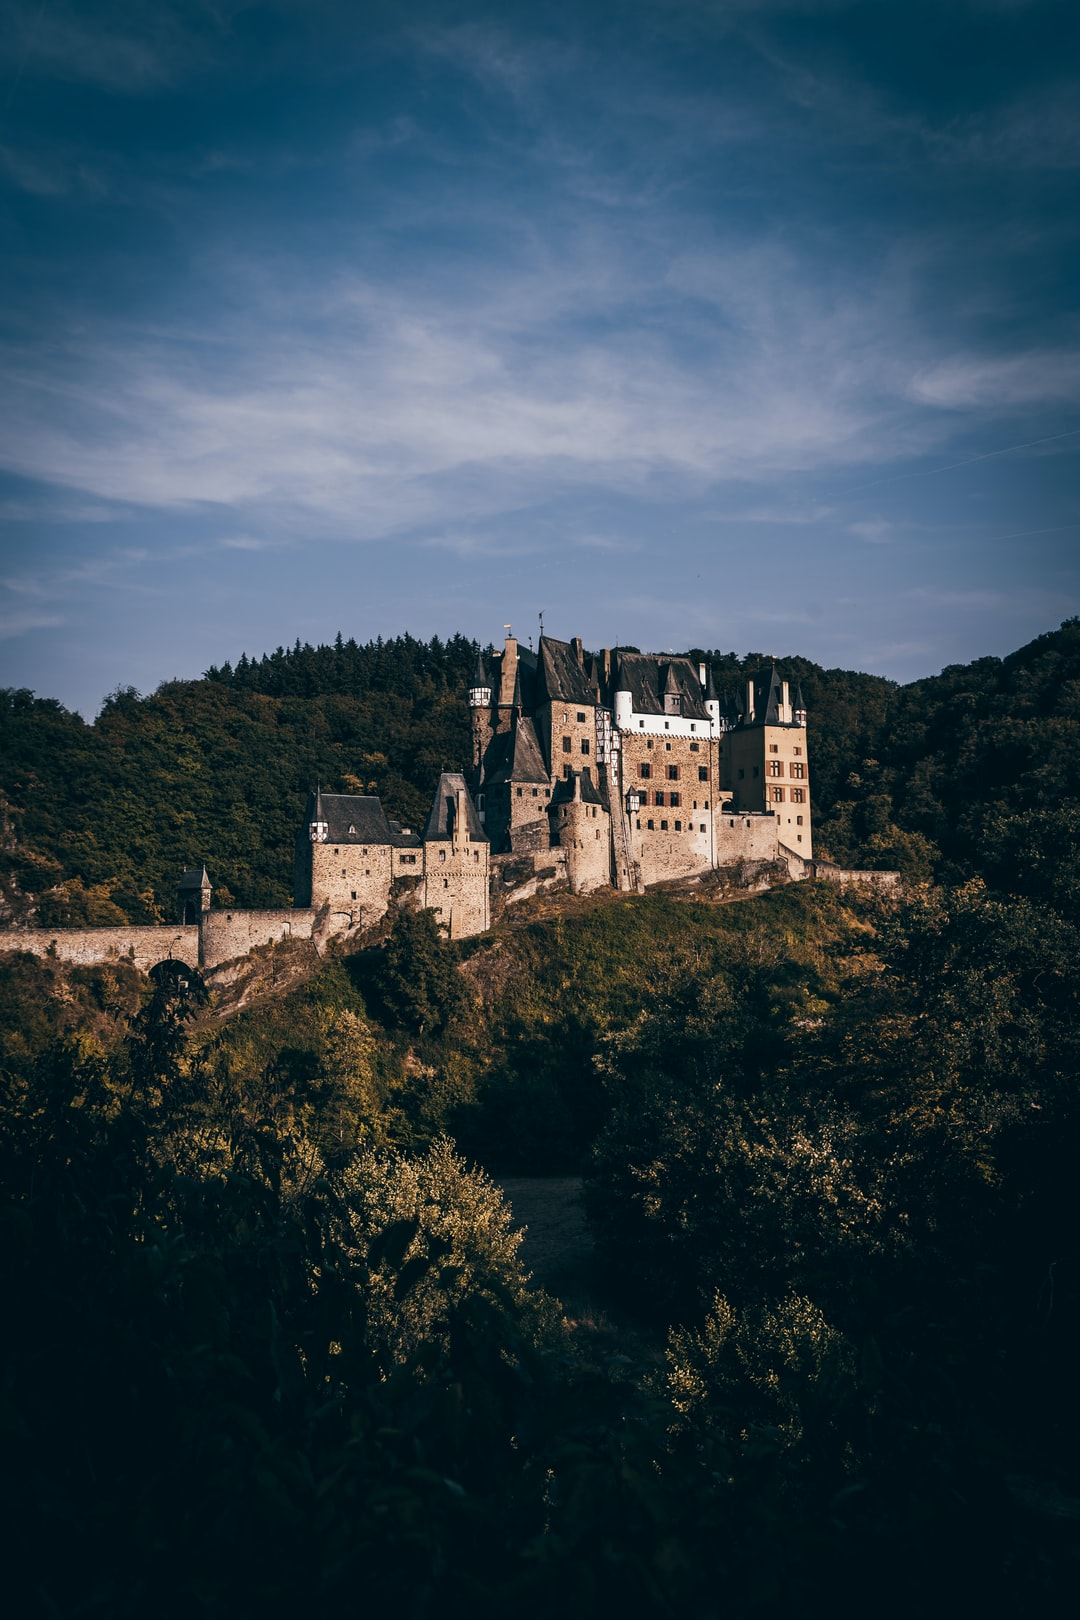 Last weekend I drove through Germany with my dad. We stopped at Burg Eltz, which i believe is one of the most beautiful castles in the world.